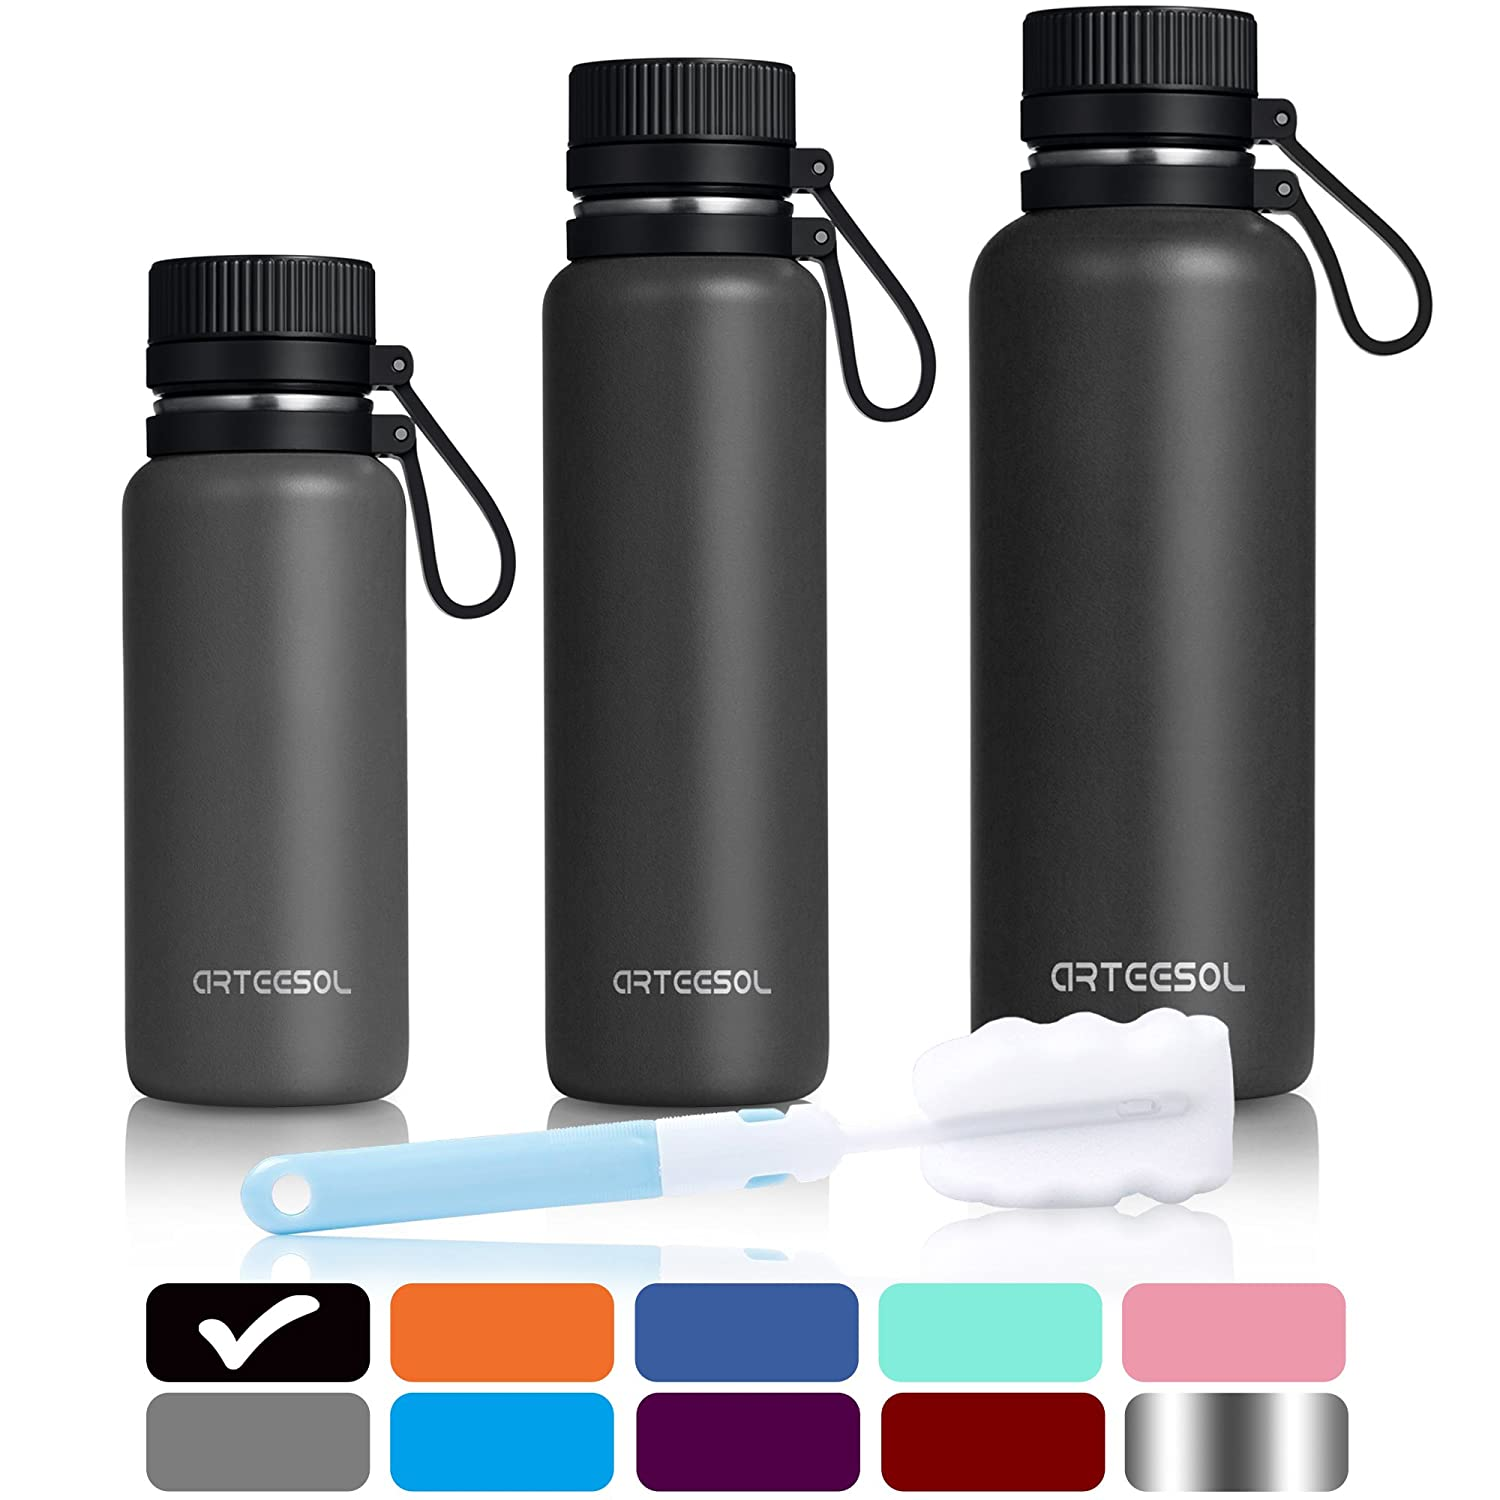 Arteesol Water Bottle 500/750/1000 Ml (17/25/34 Oz) Bpa Free Vacuum Insulated 18/8 Stainless Steel Leak Proof Double Walled Wide Mouth Thermos For Sports Gym Workout, Cold Or Hot For 12h [9 Colours] by Amazon